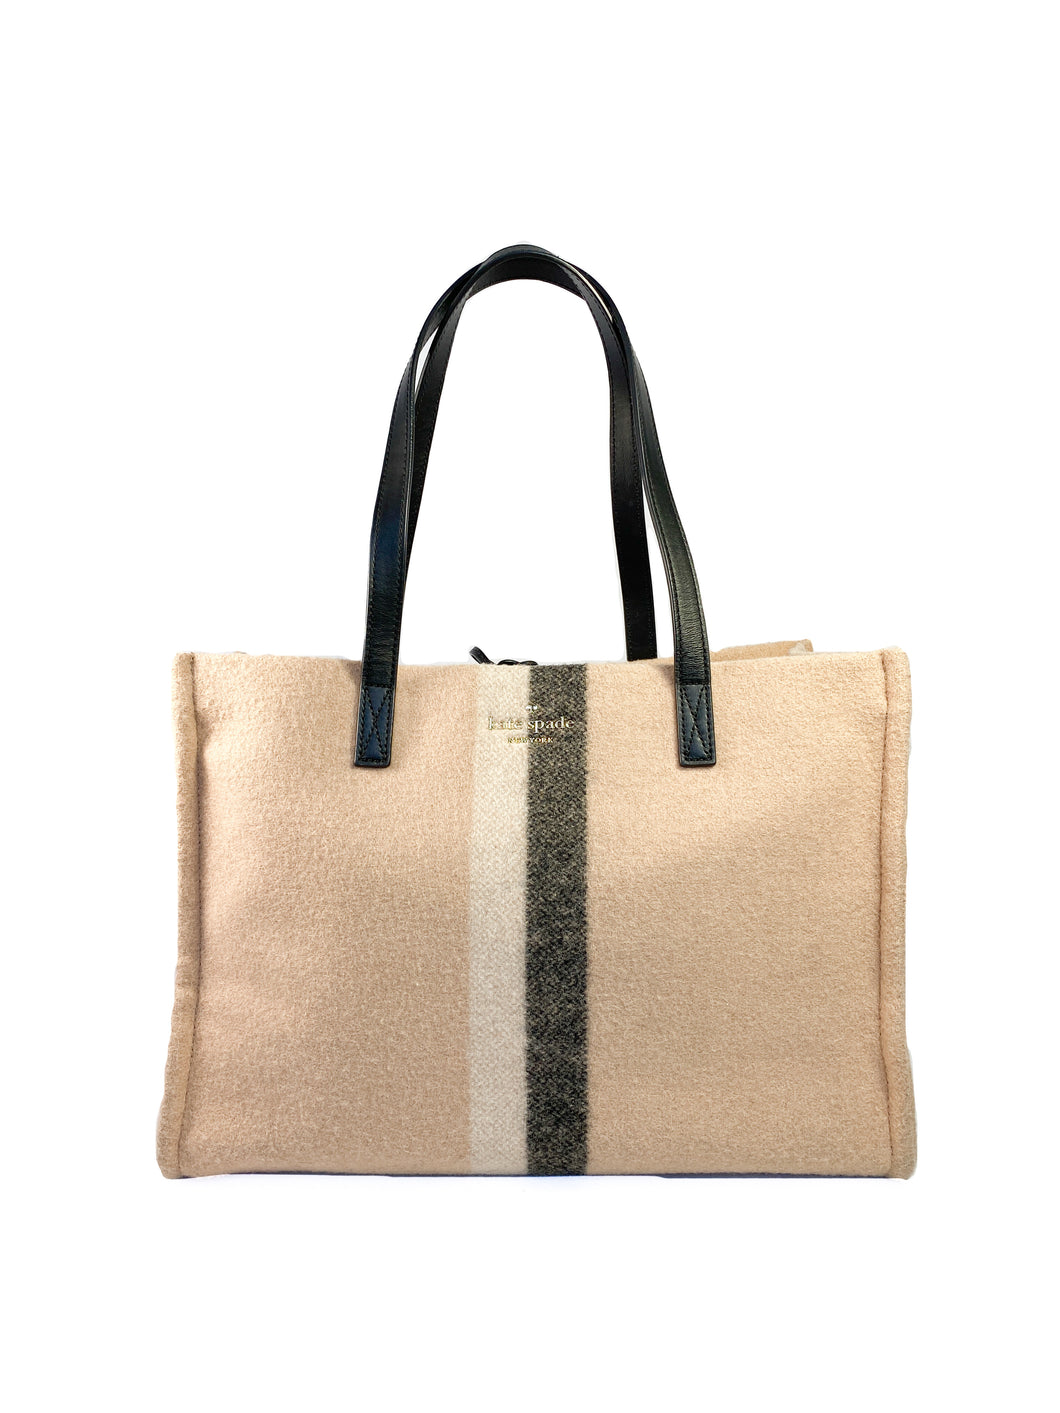 Kate Spade nude wool and leather tote